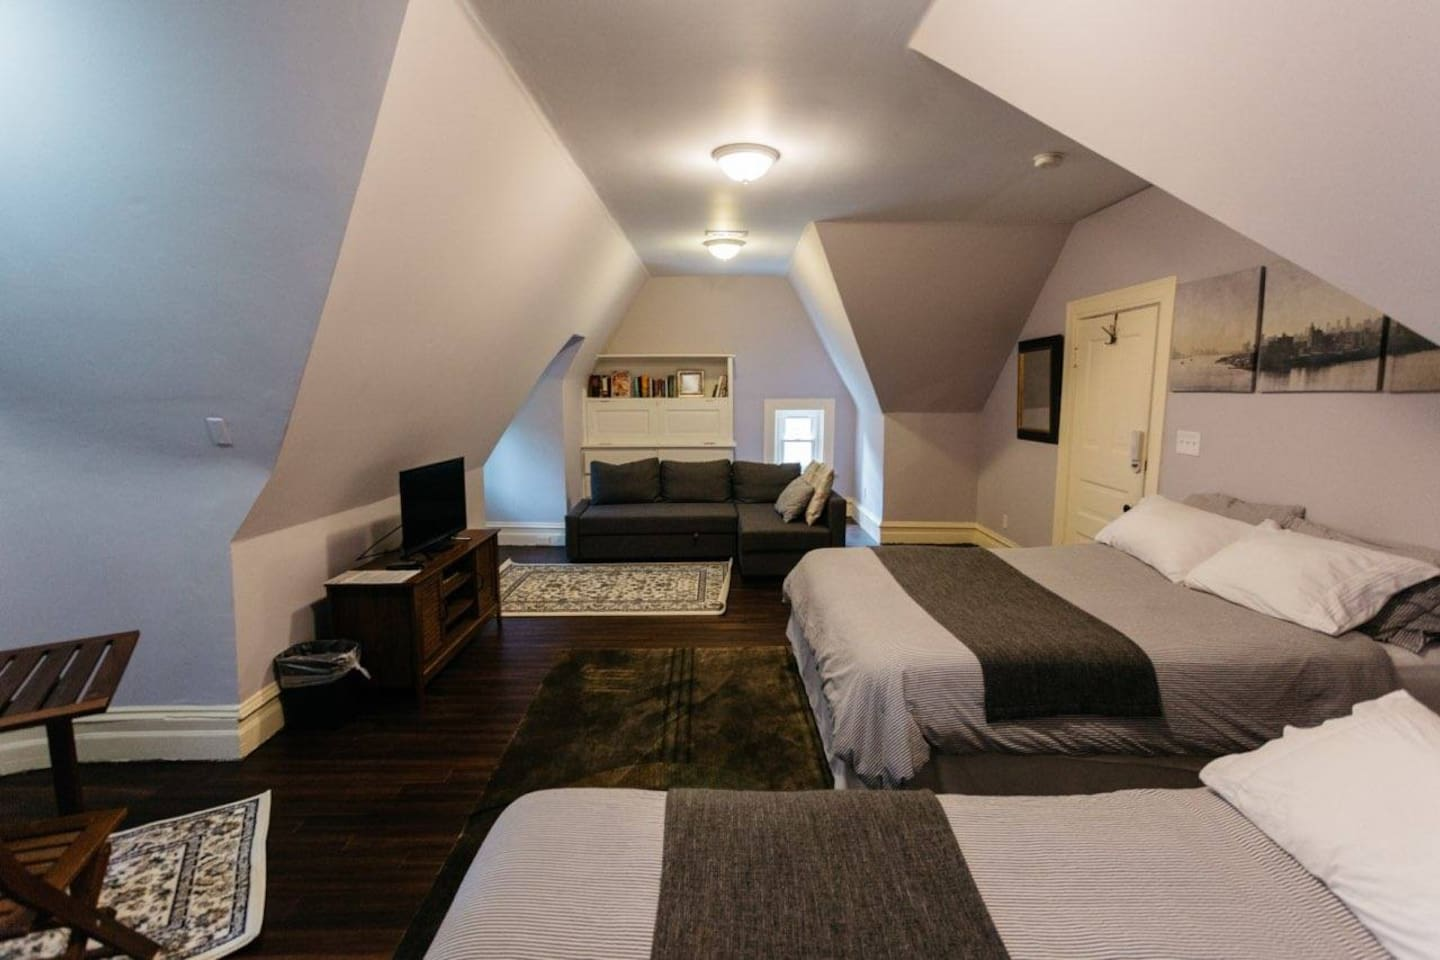 Double Queen Room featuring two Queen beds, pull out sleeper couch, TV with Amazon Fire and all the good streaming services, and breakfast table